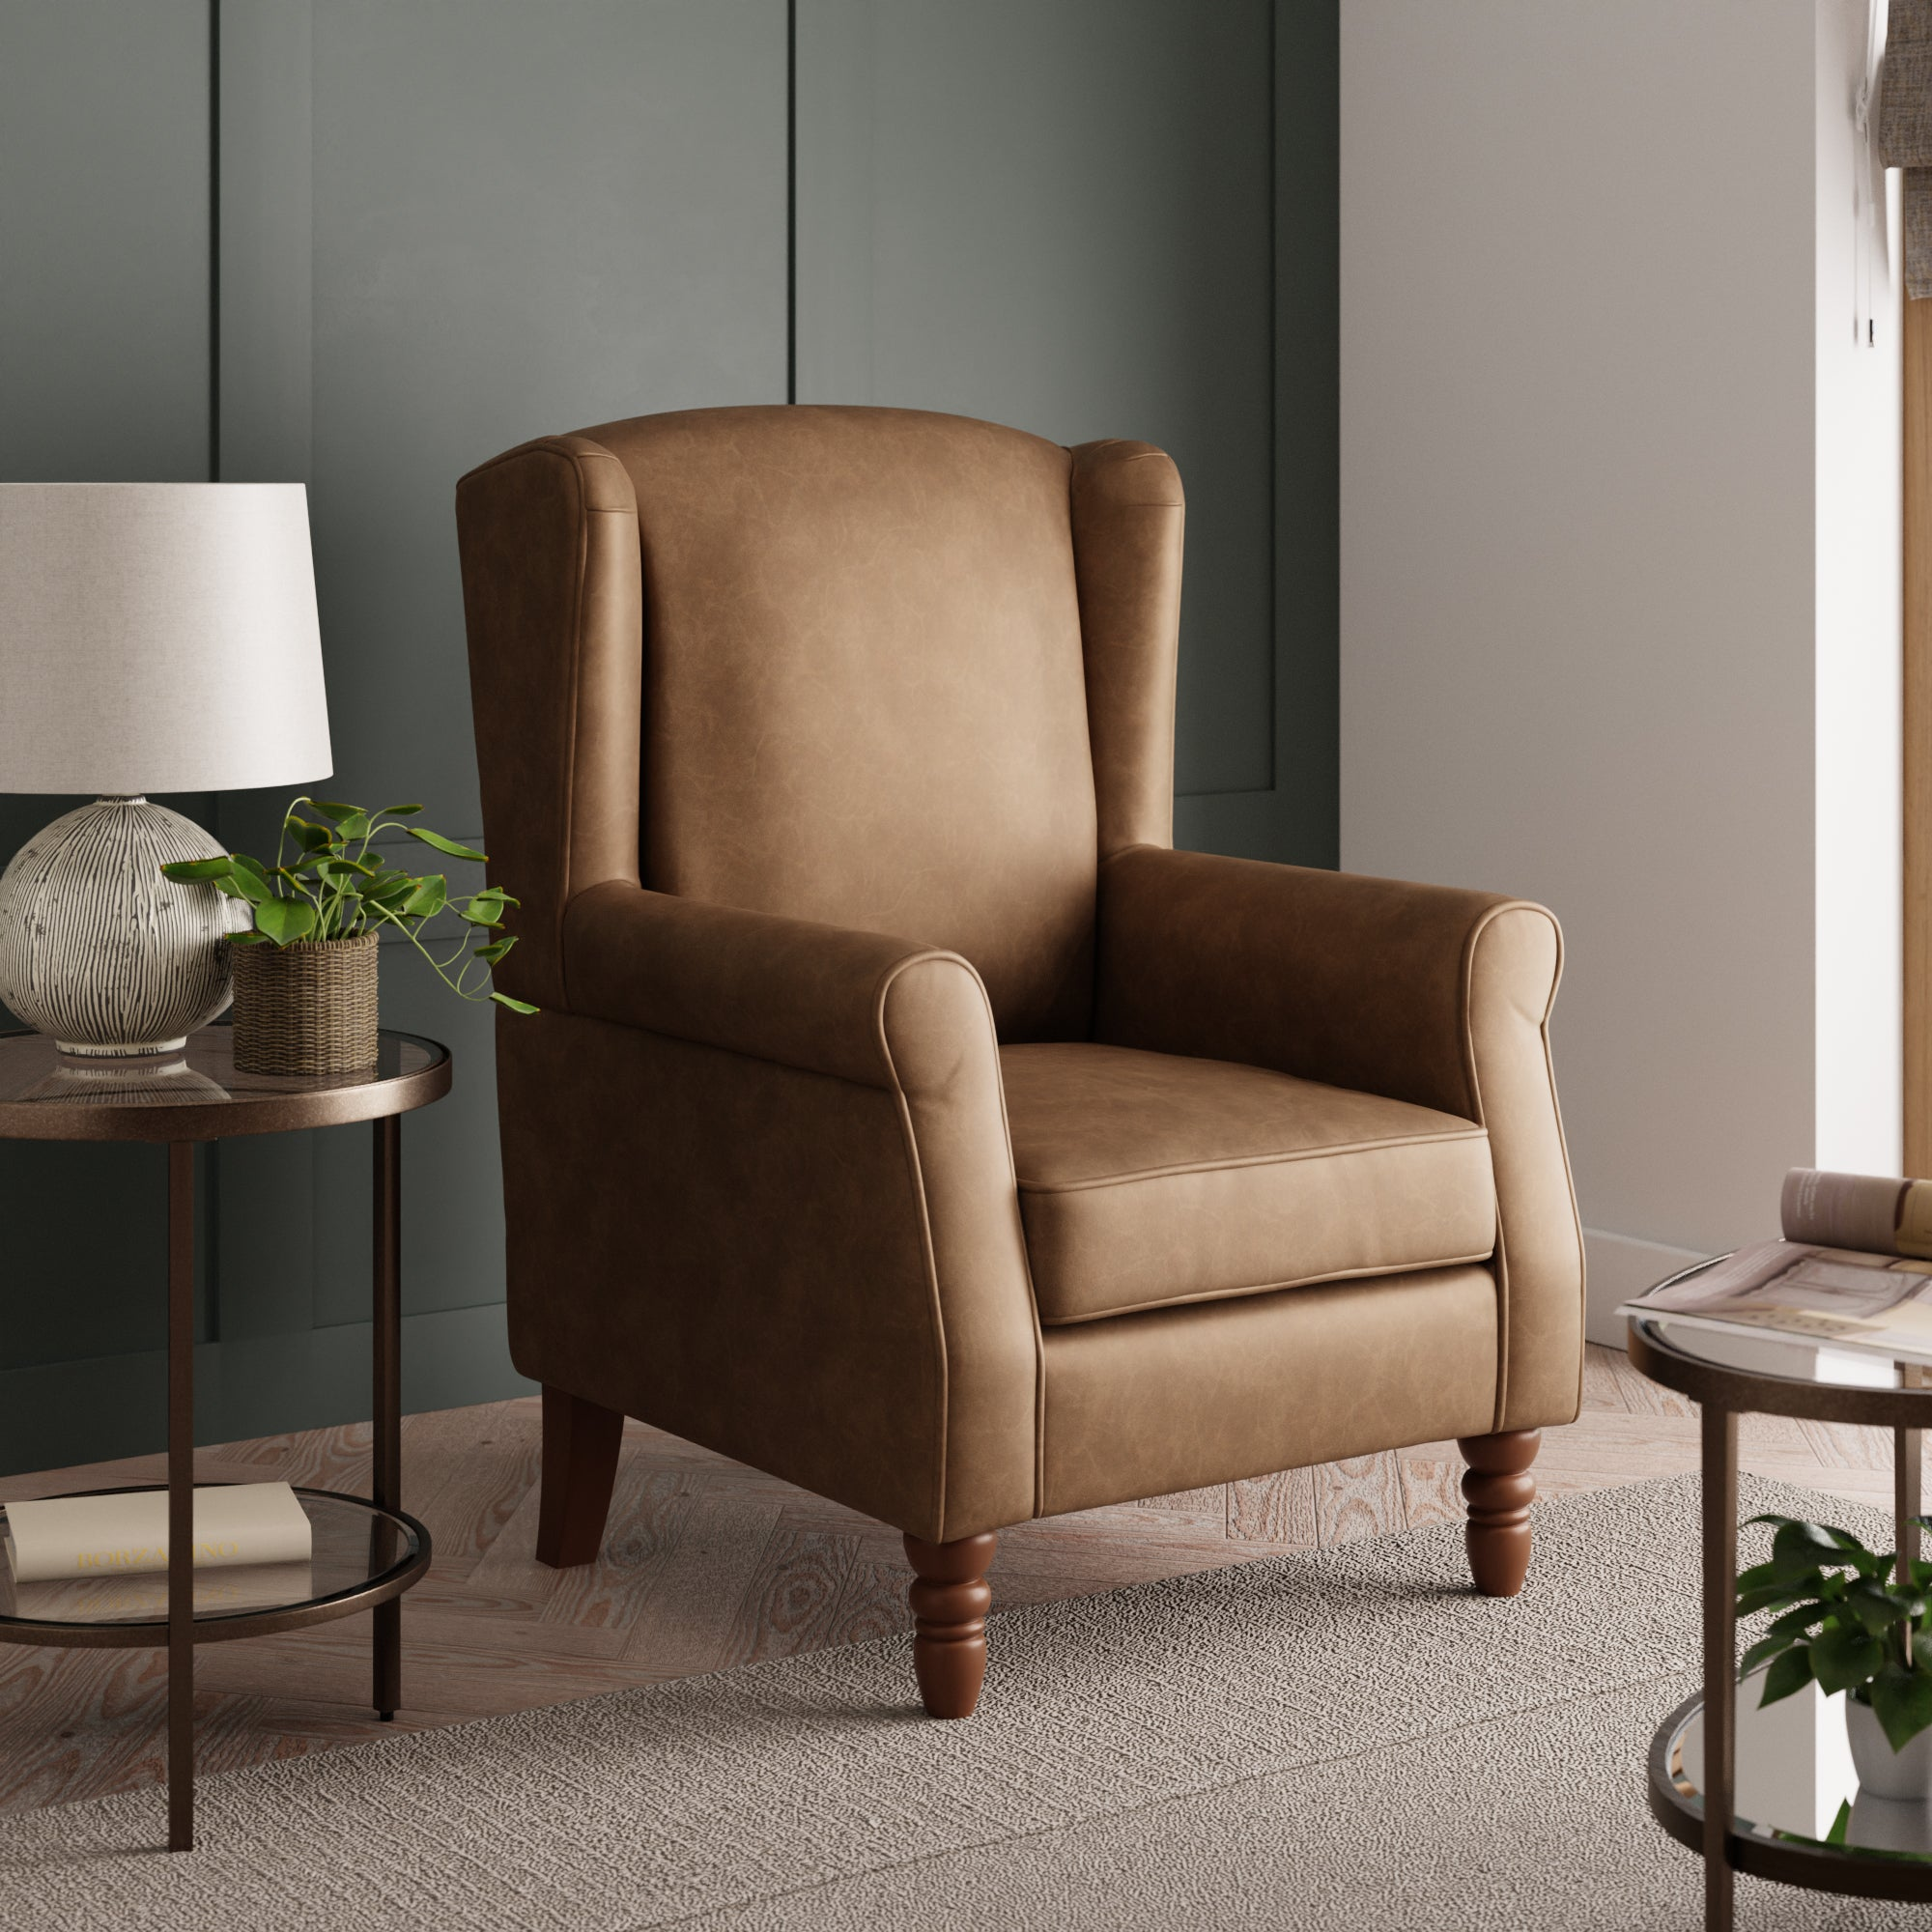 Oswald Tan Distressed Faux Leather Armchair Tan (Brown)